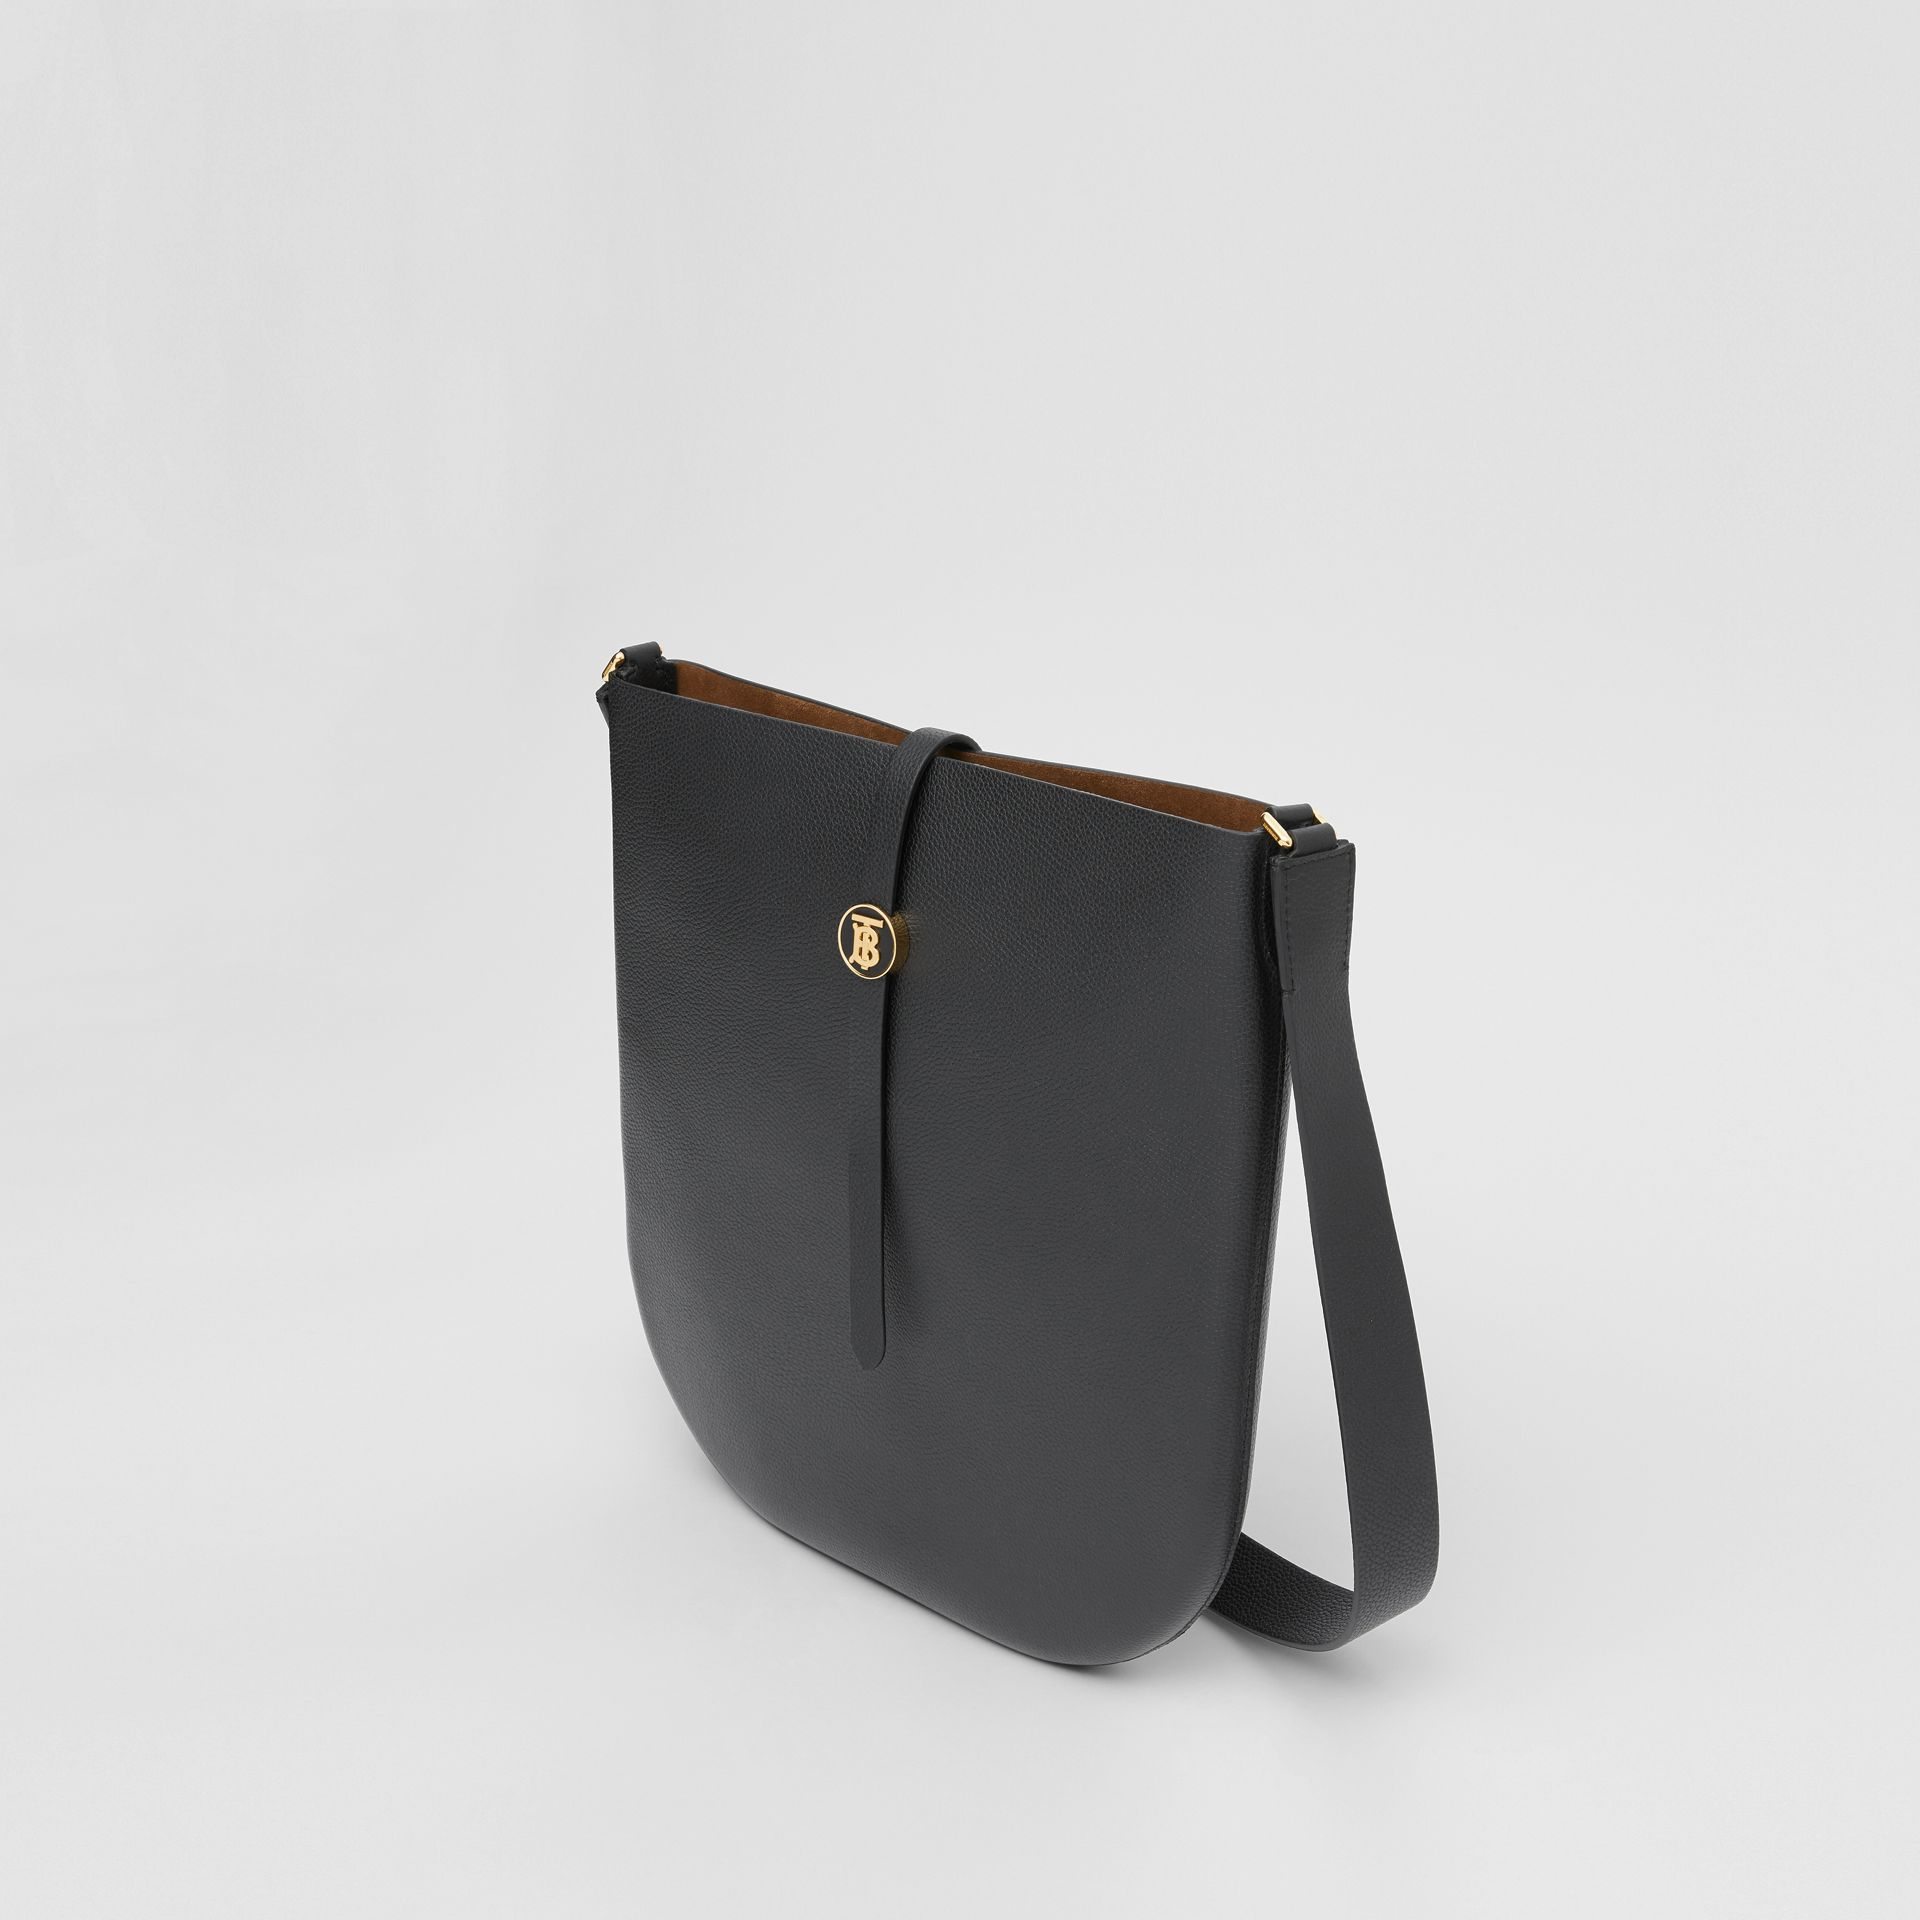 Grainy Leather Anne Bag in Black - Women | Burberry - gallery image 3